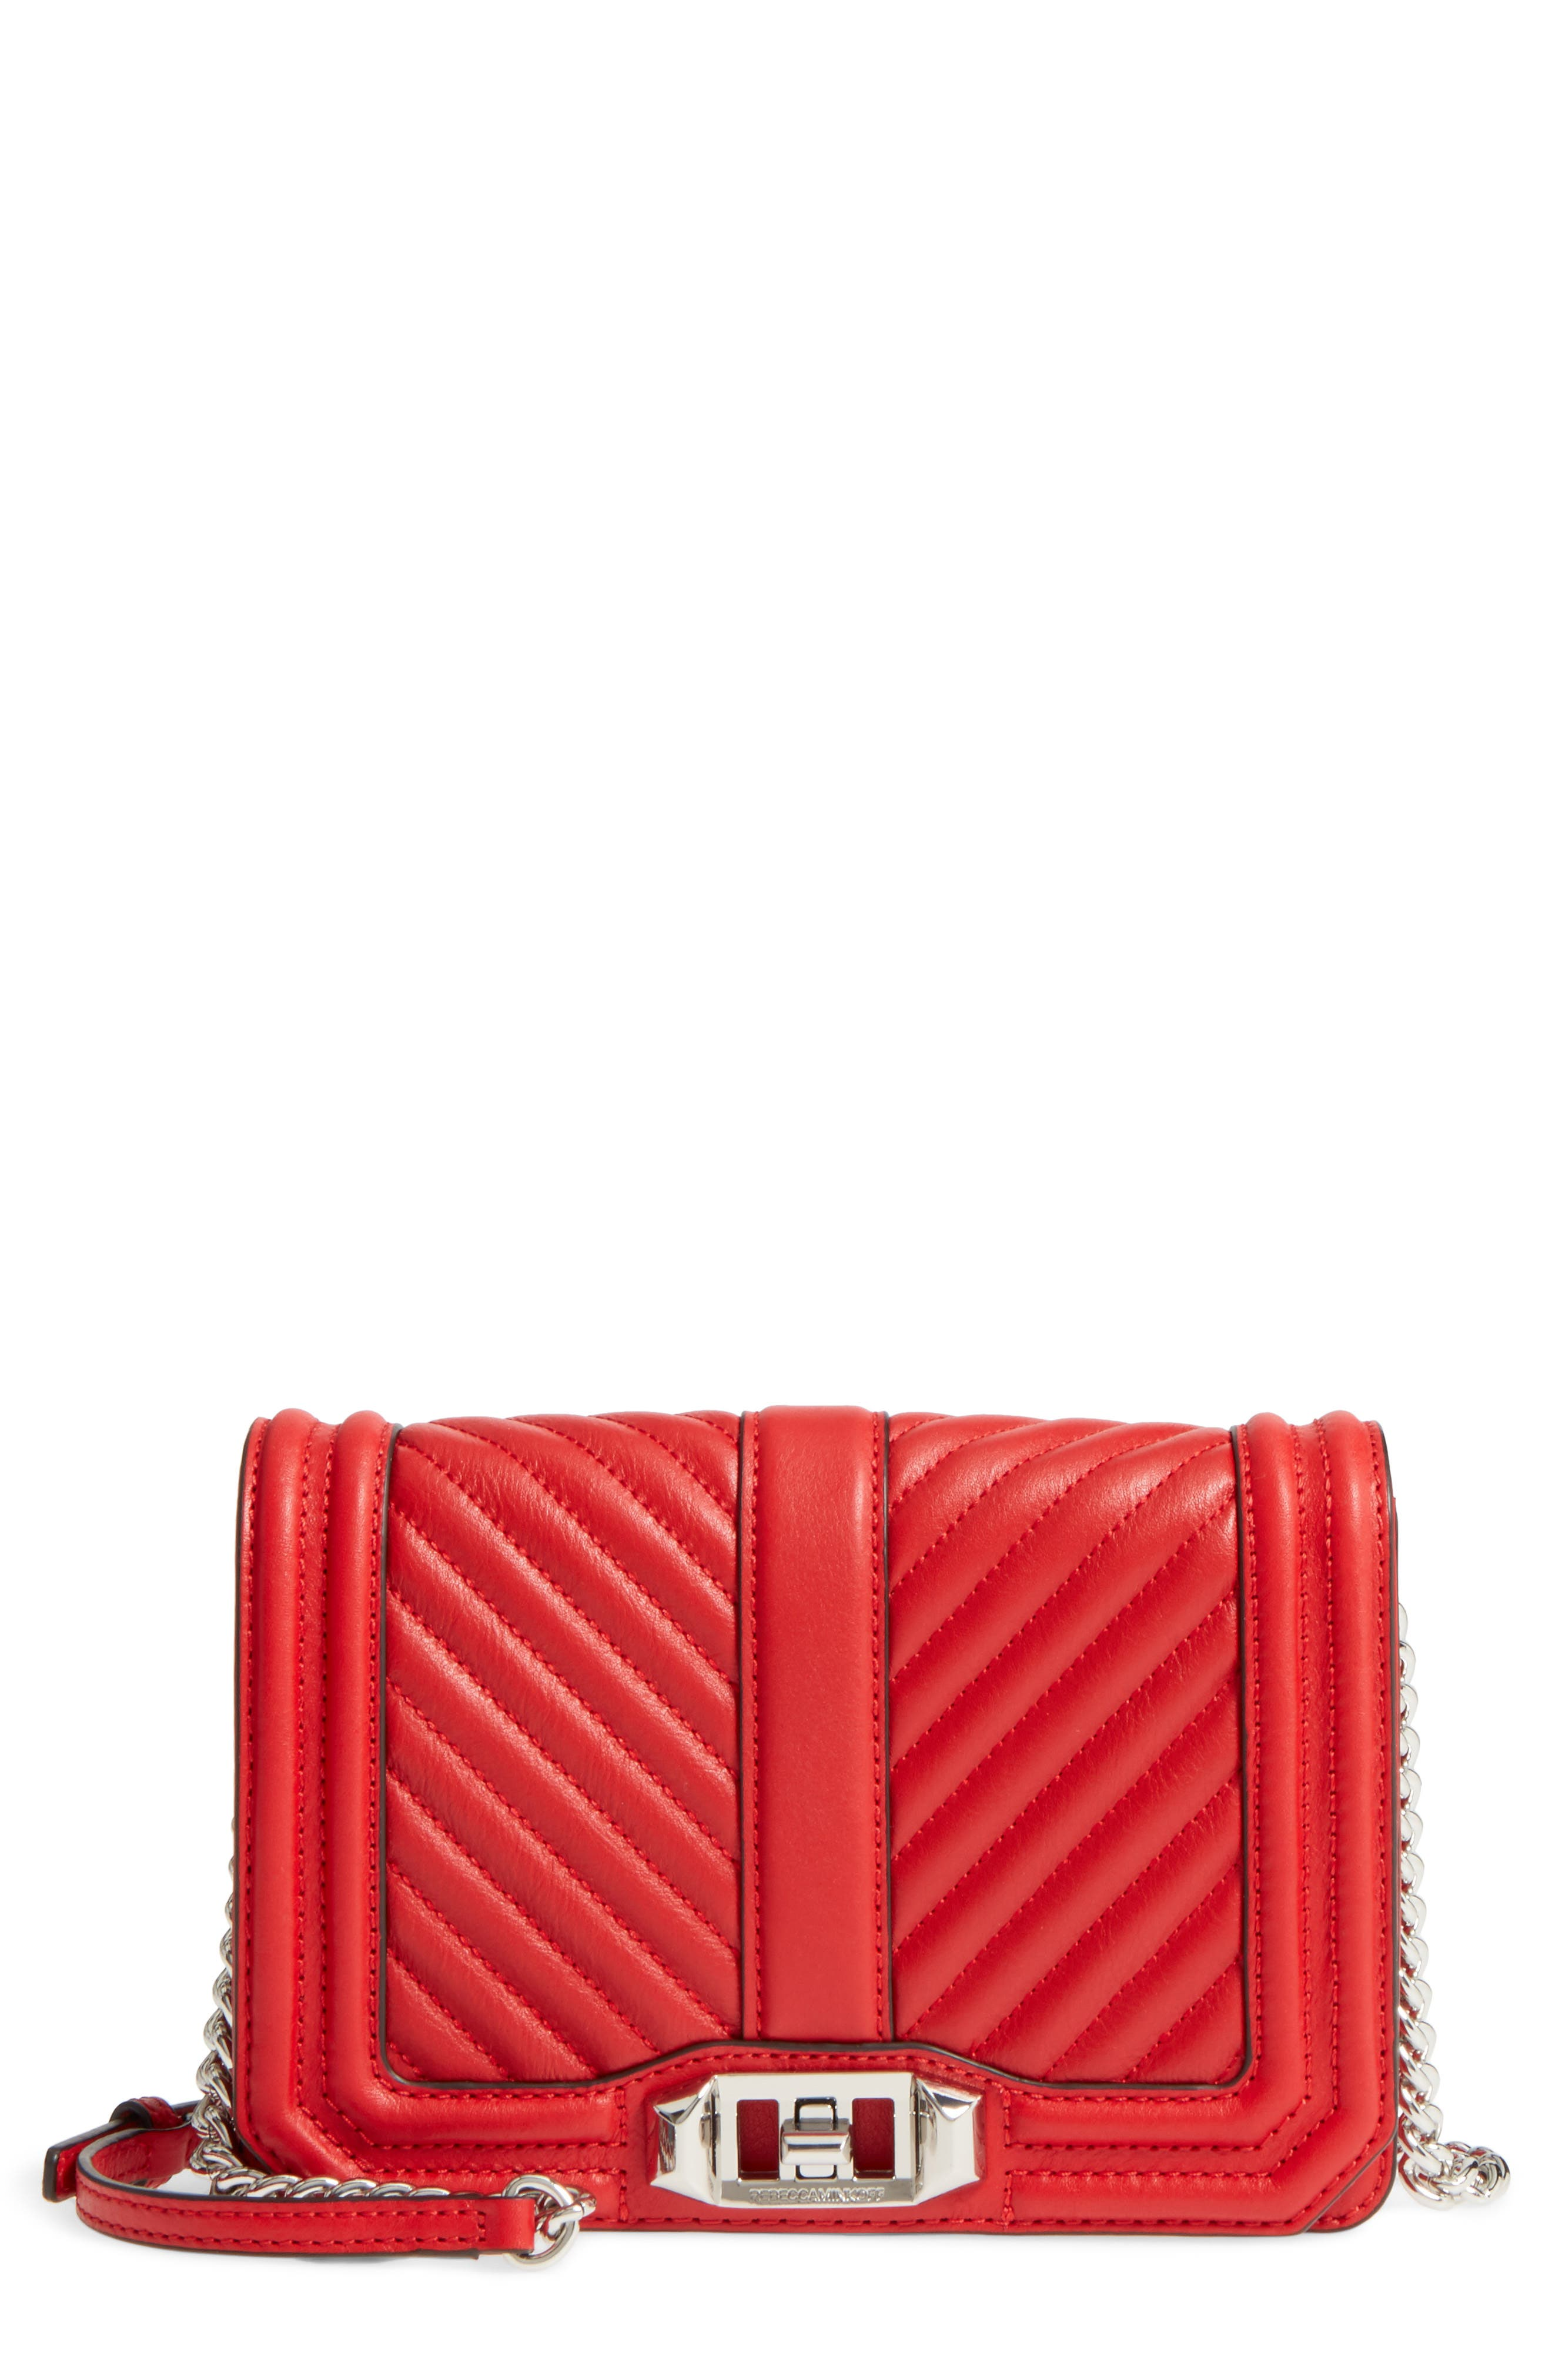 Small Love Quilted Leather Crossbody Bag,                             Main thumbnail 1, color,                             636